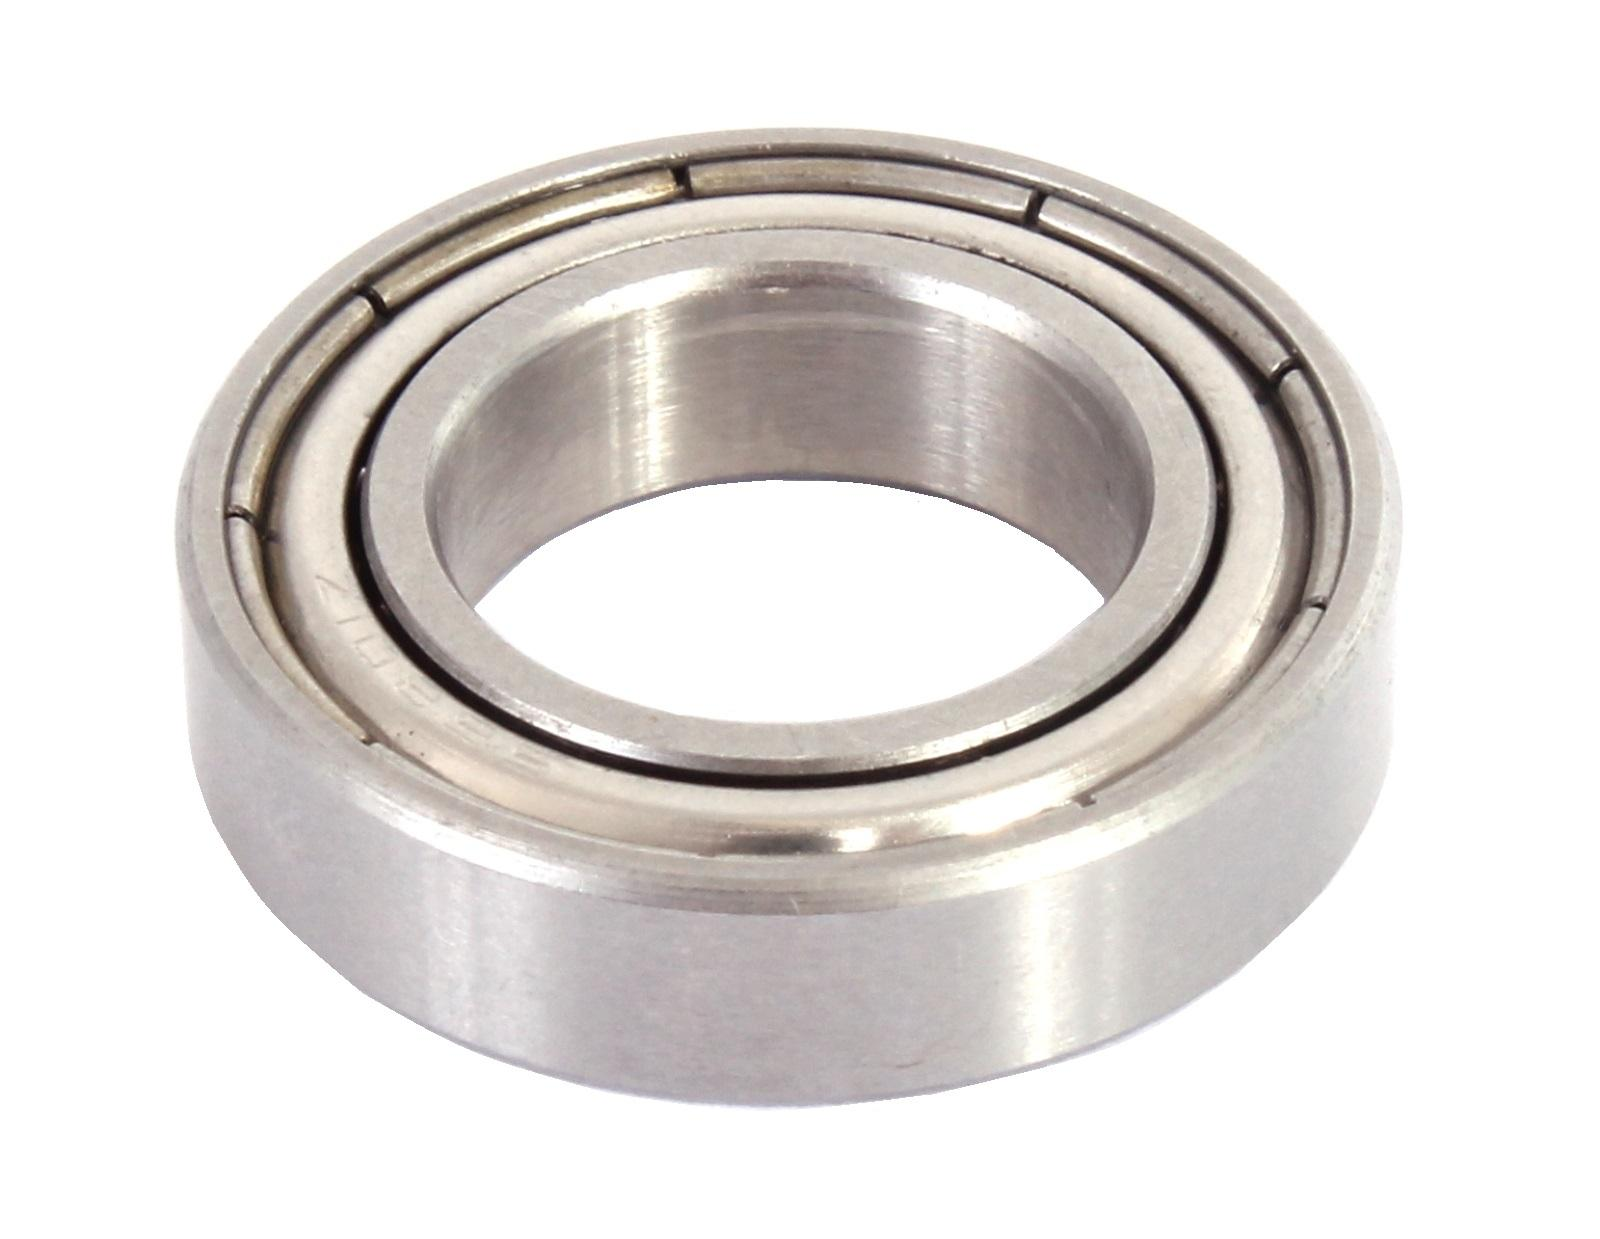 S61800ZZ S6800ZZ Stainless Steel Ball Bearing 10x19x5mm